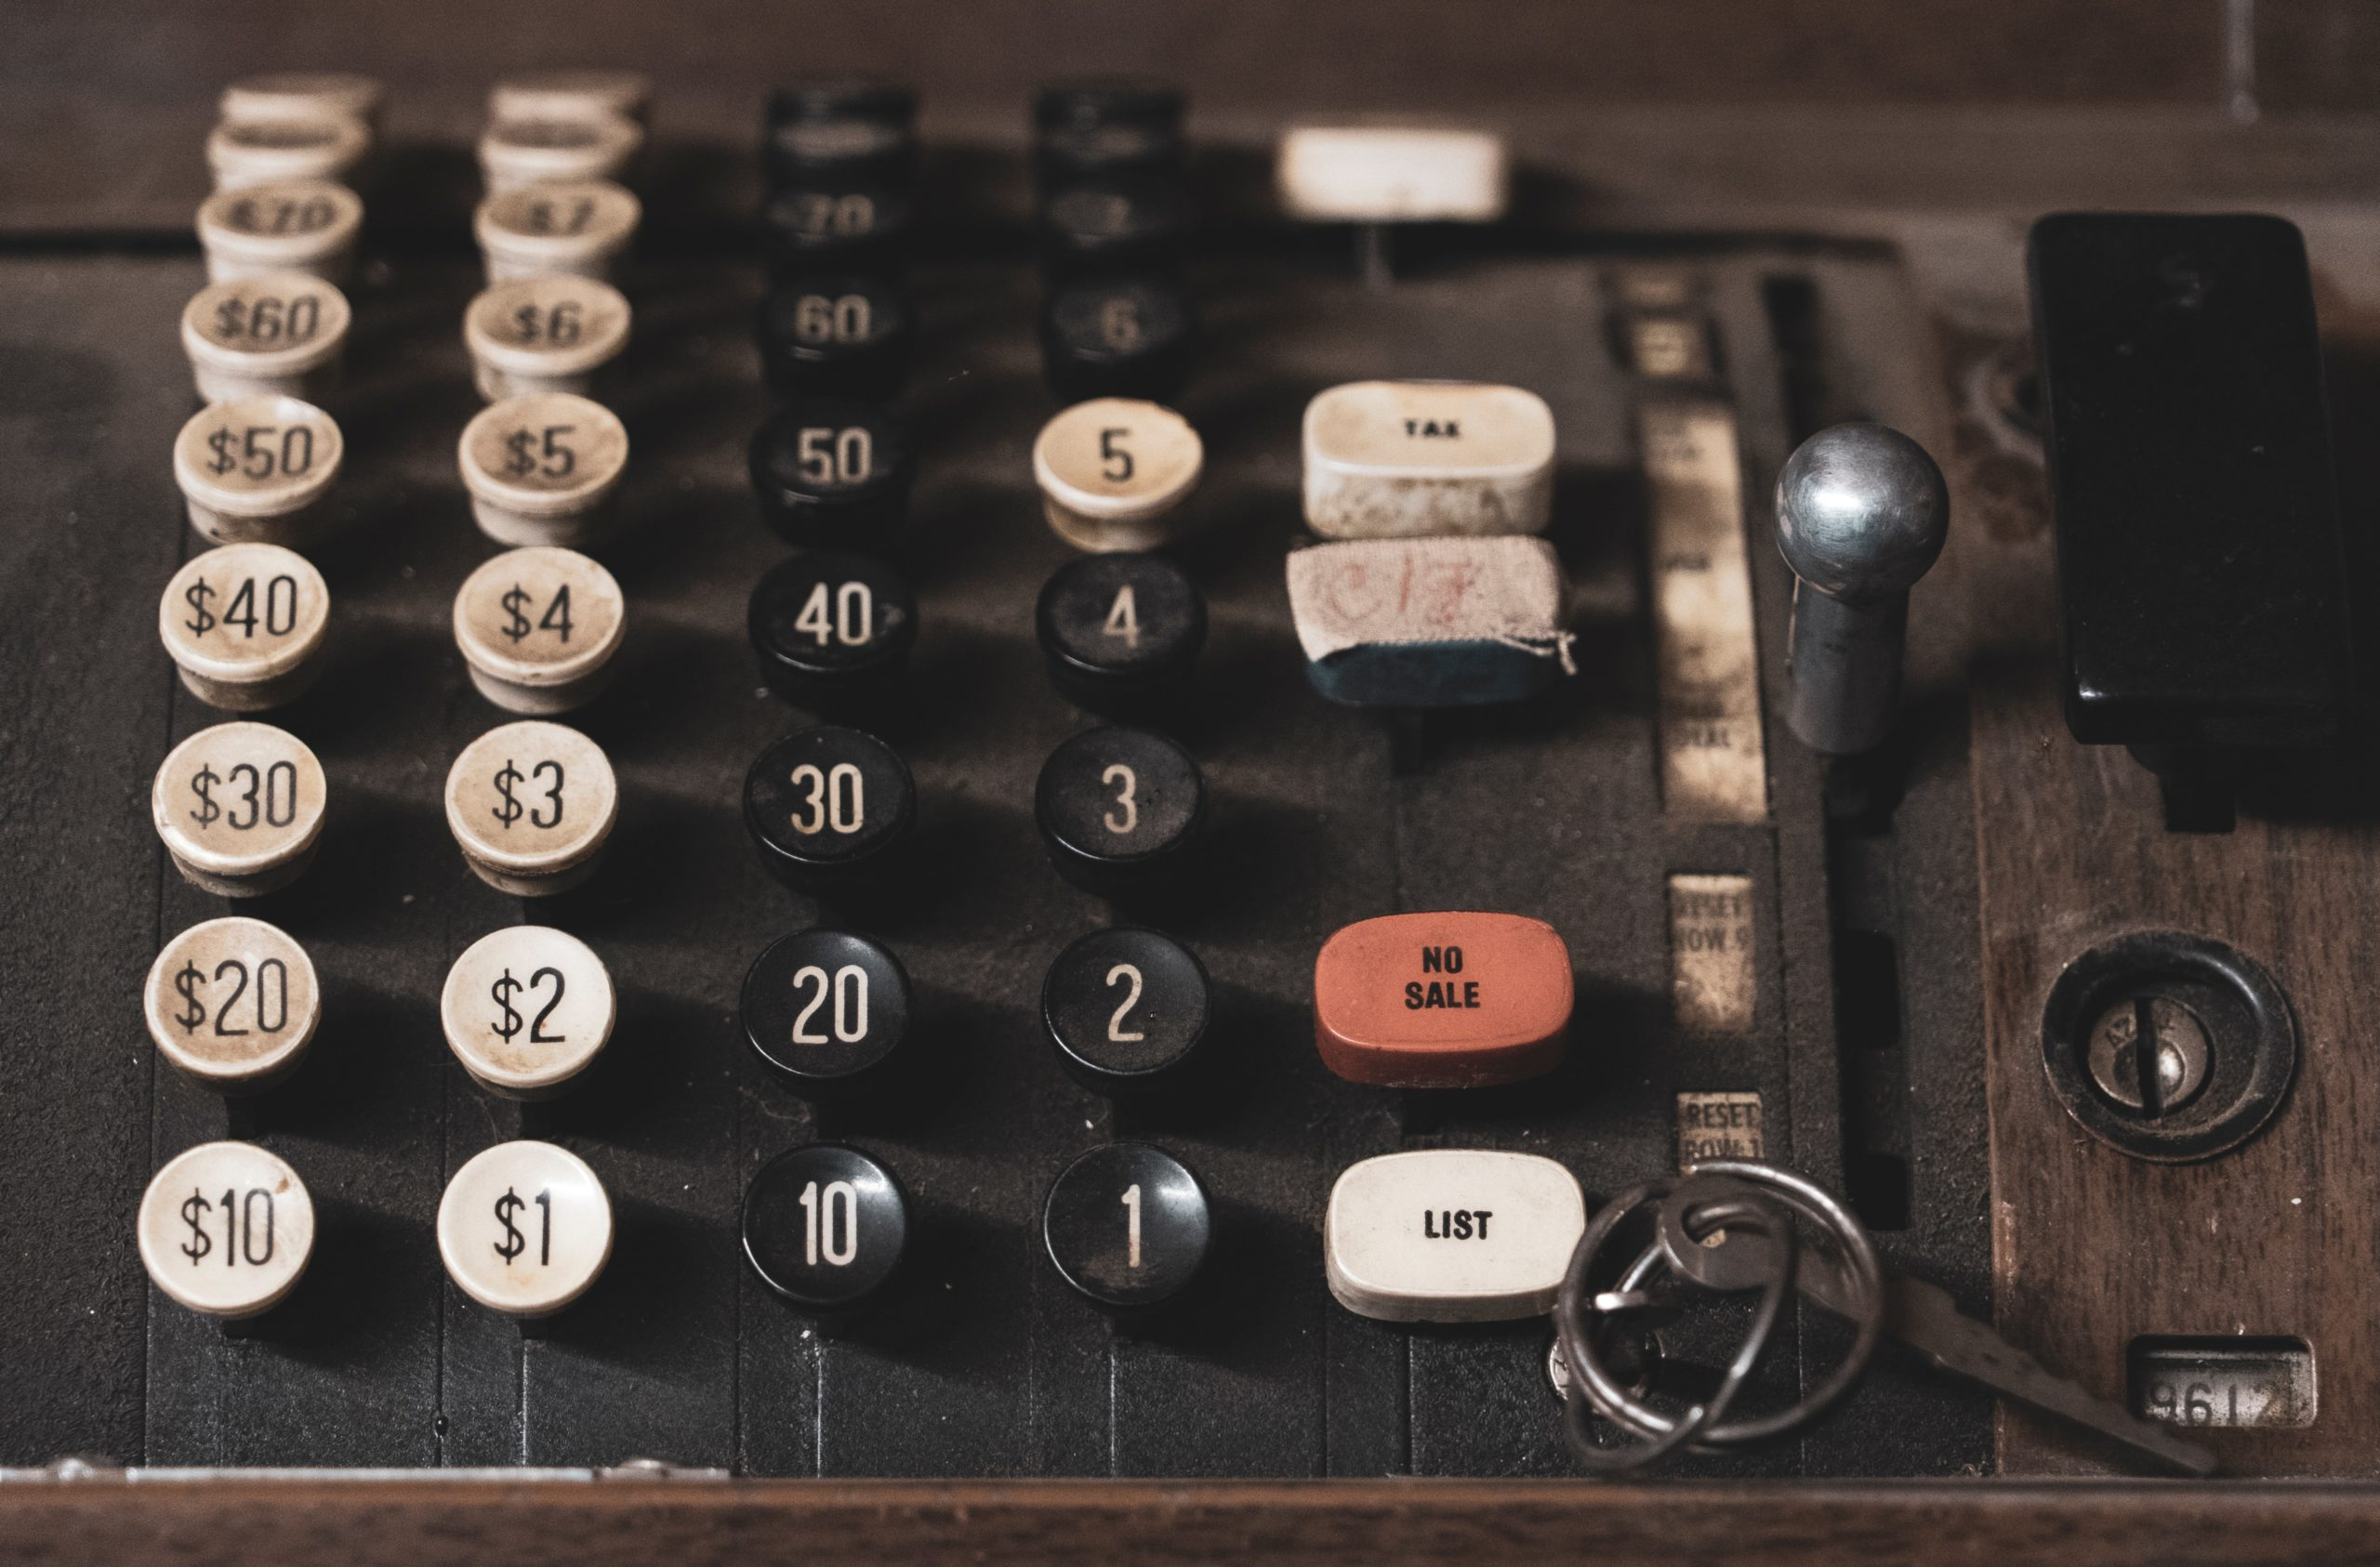 shared ownership remortgage calculator